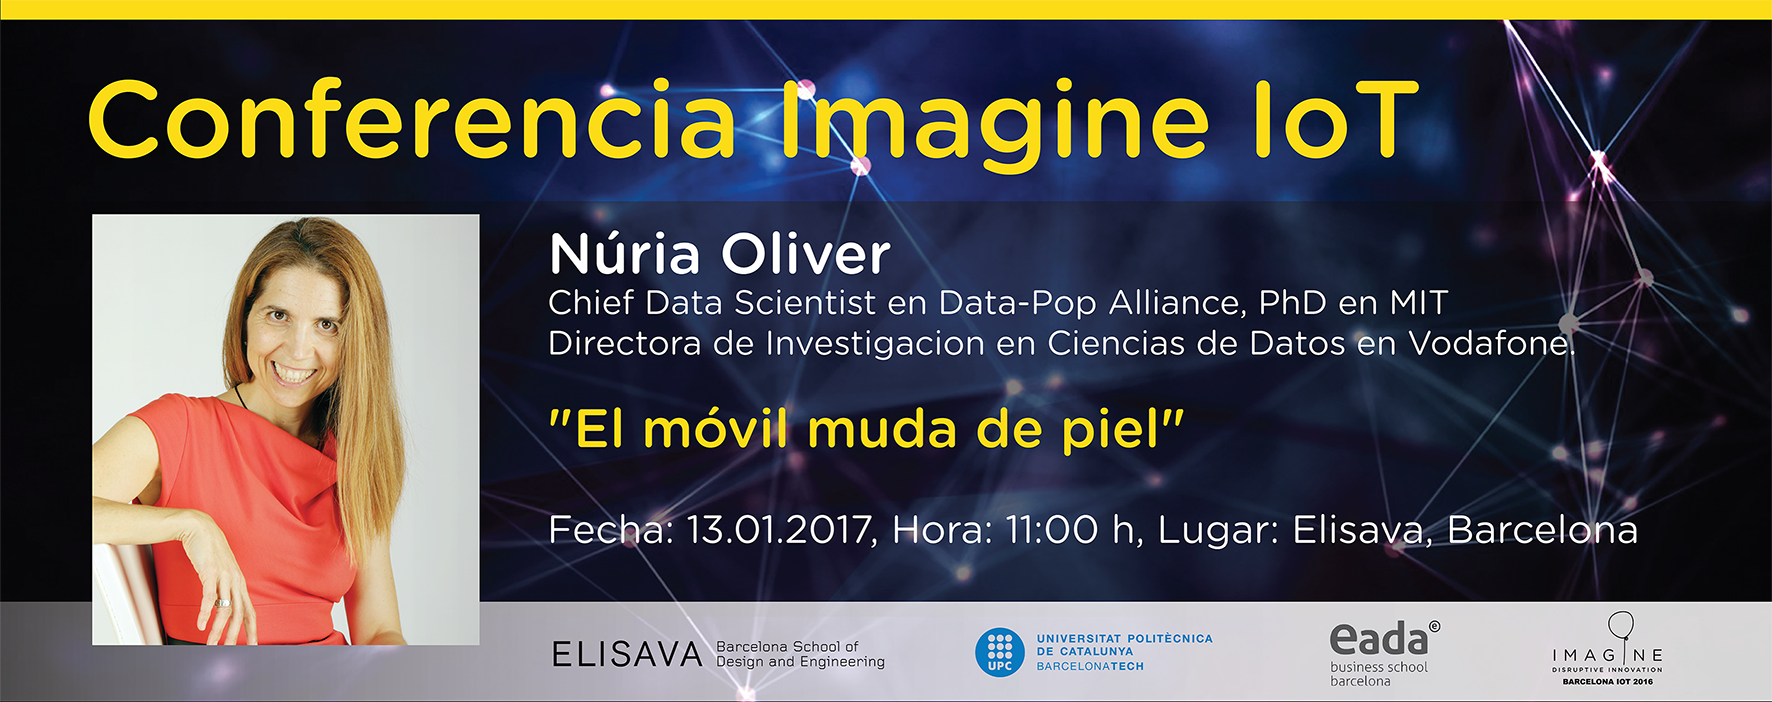 flyer-conferencia-imagine-iot-nuria-oliver-baja